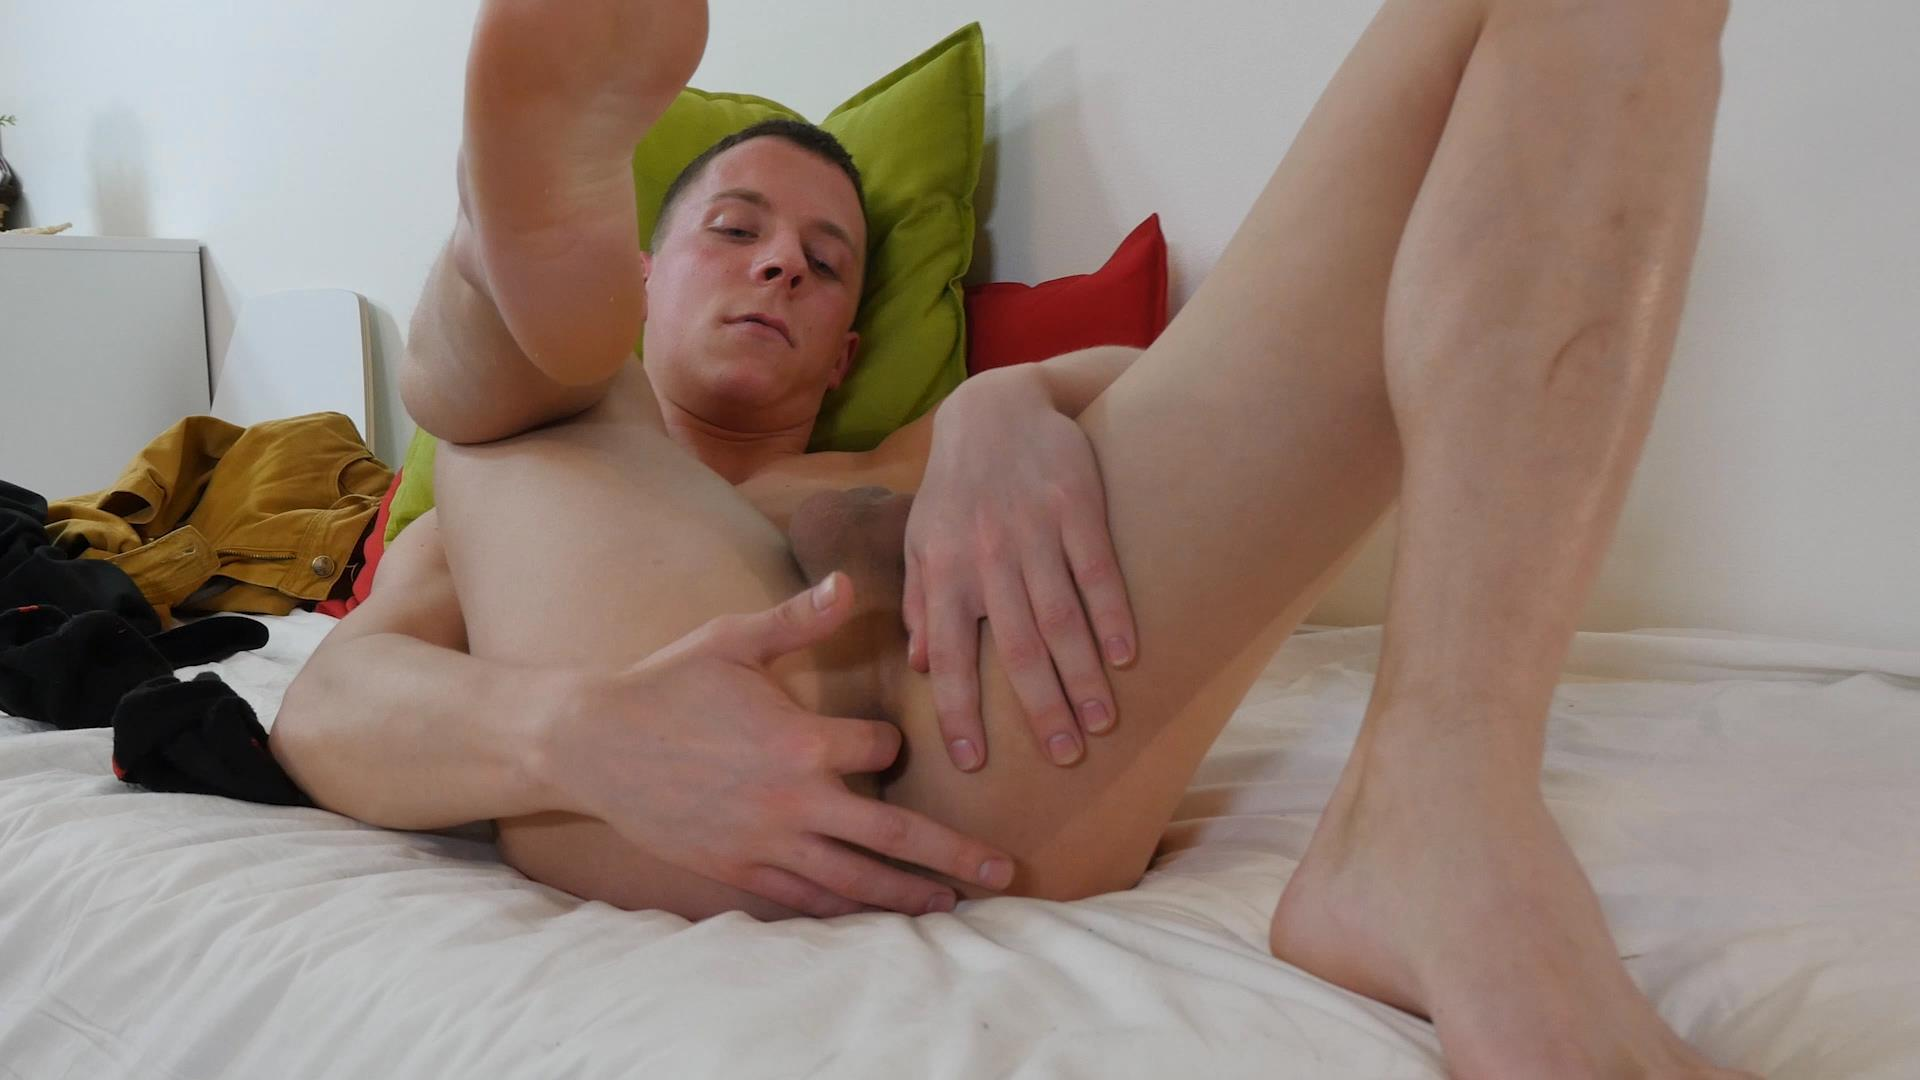 Twink Boys Party Andrew Kitt Twink With Big Uncut Cock Masturbation Amateur Gay Porn 19 Twink Andrew Kitt Rubbing A Load Out Of His Big Uncut Cock